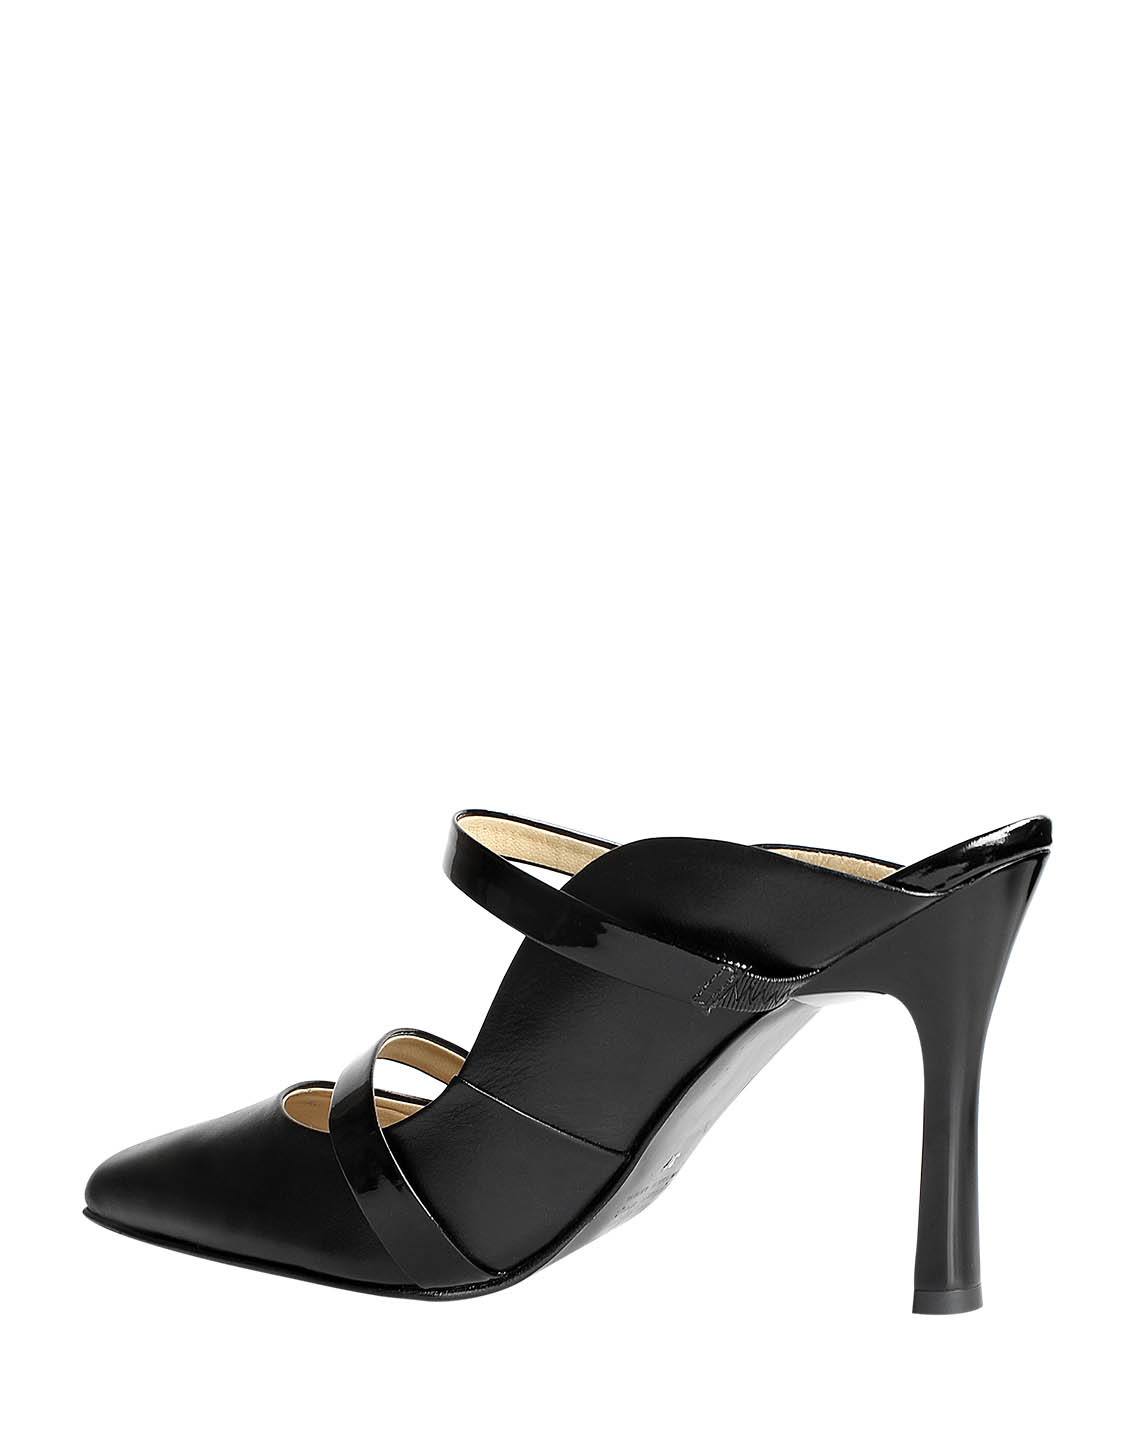 Calzado Pumps FRT-9262 Color Negro